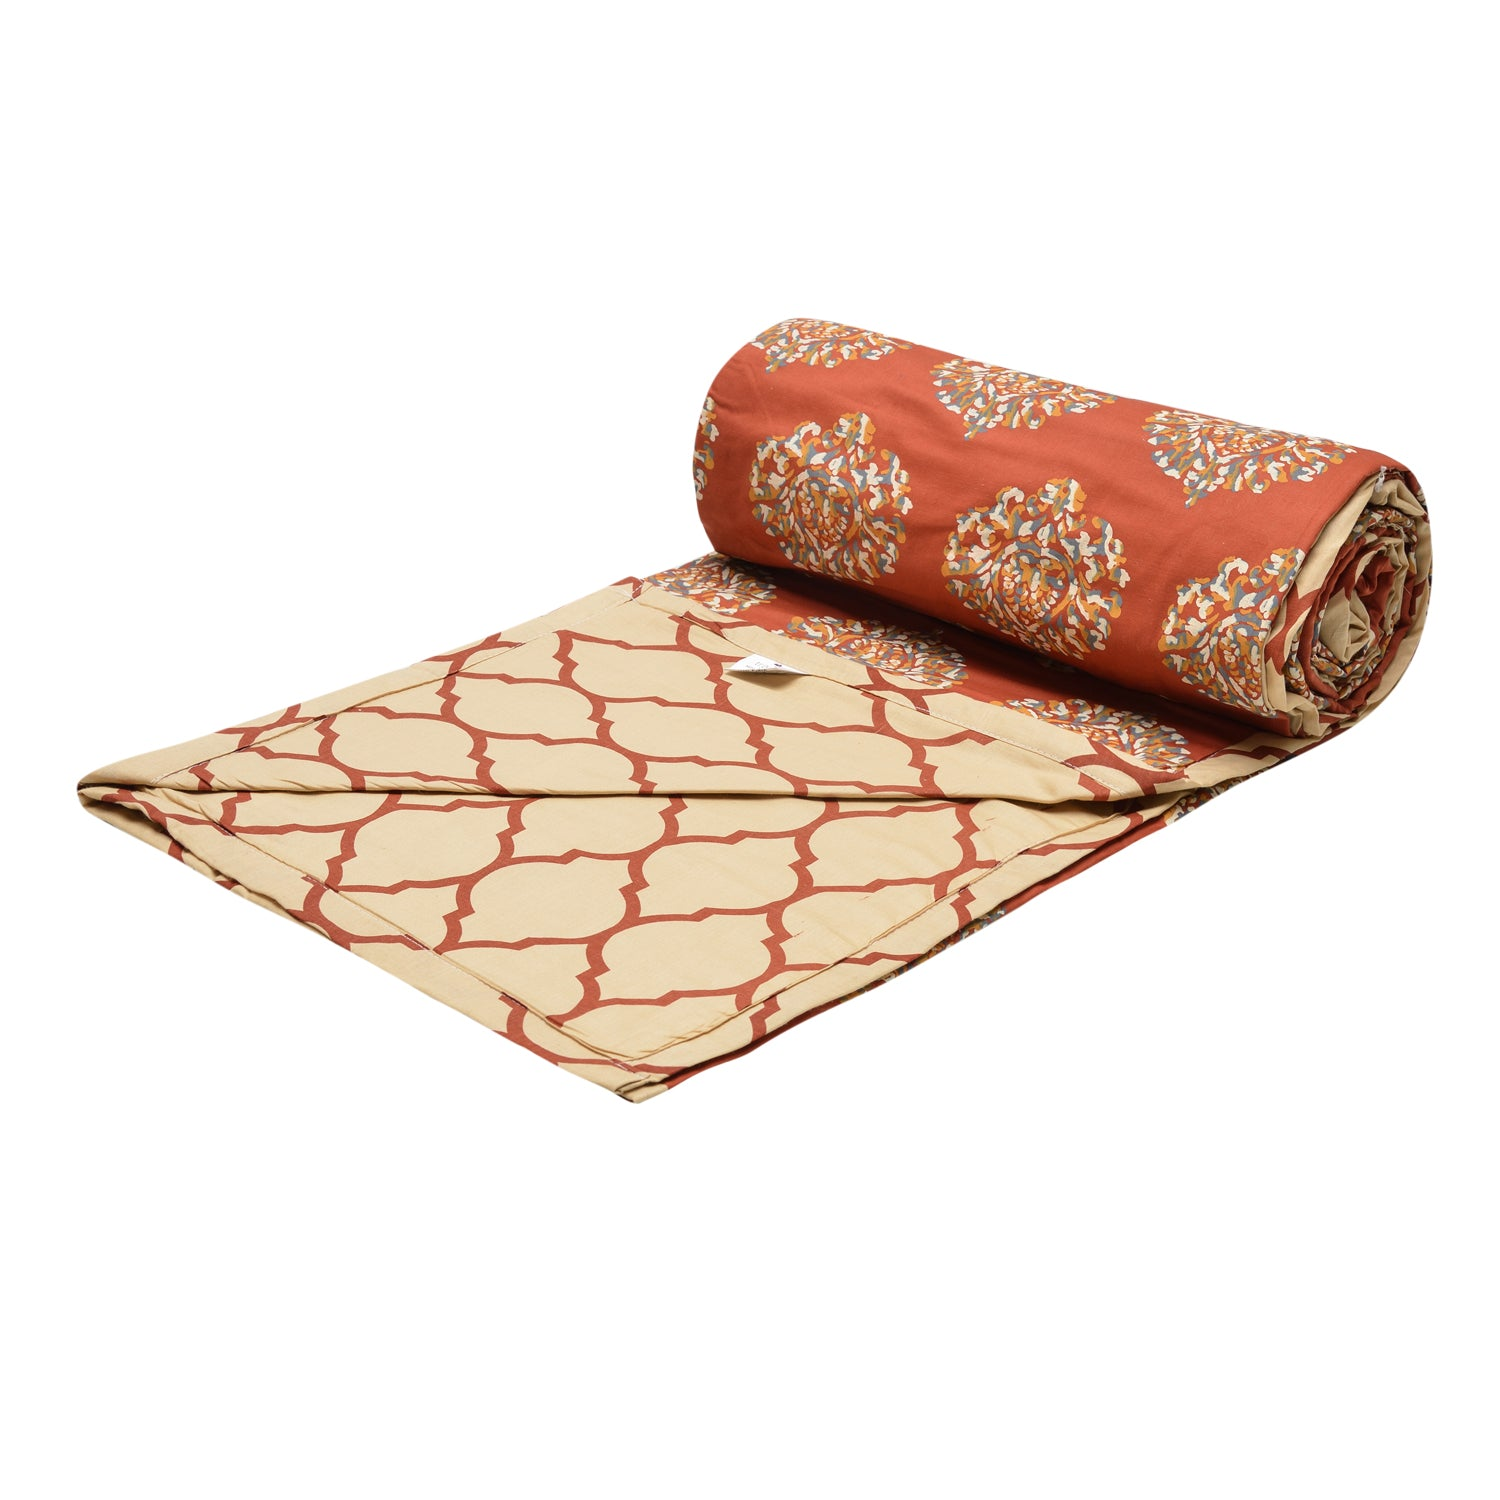 Trance Home Linen Cotton Double Dohar- Damask Clay Red